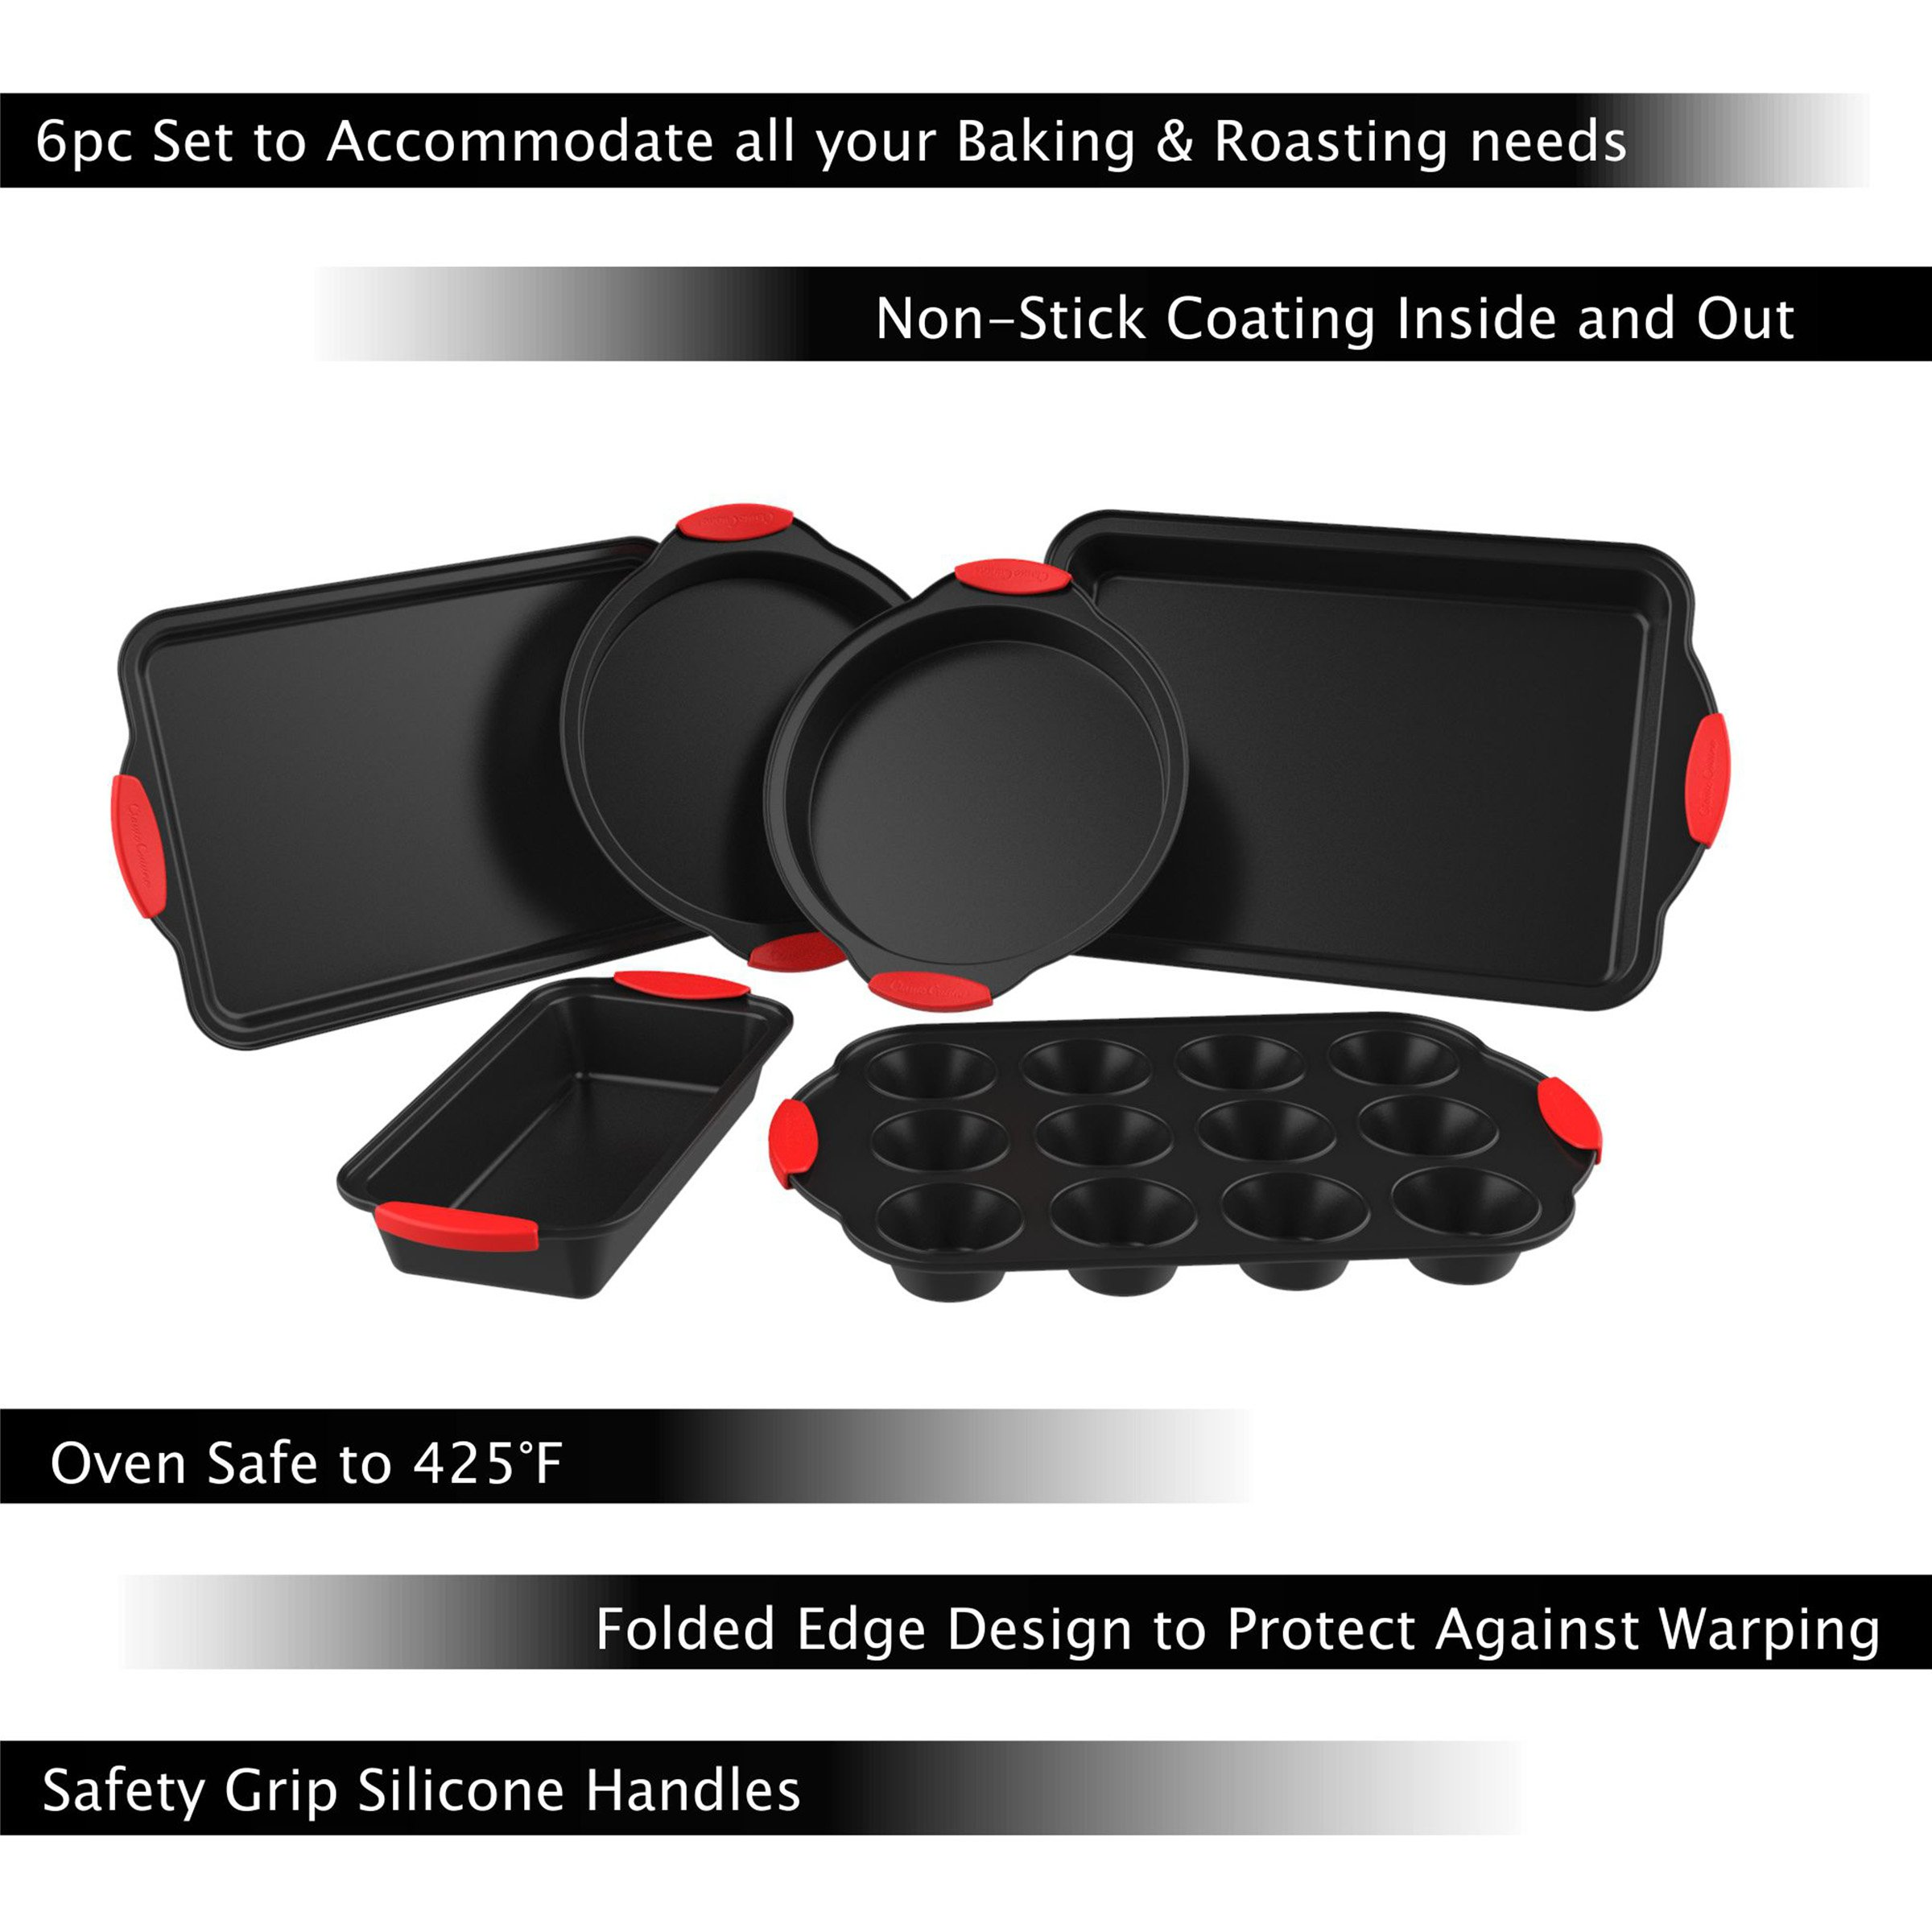 Cake Pans with Silicone Grip Handles--Kitchen Cookware by Classic Cuisine-Bakeware Sets 3.24